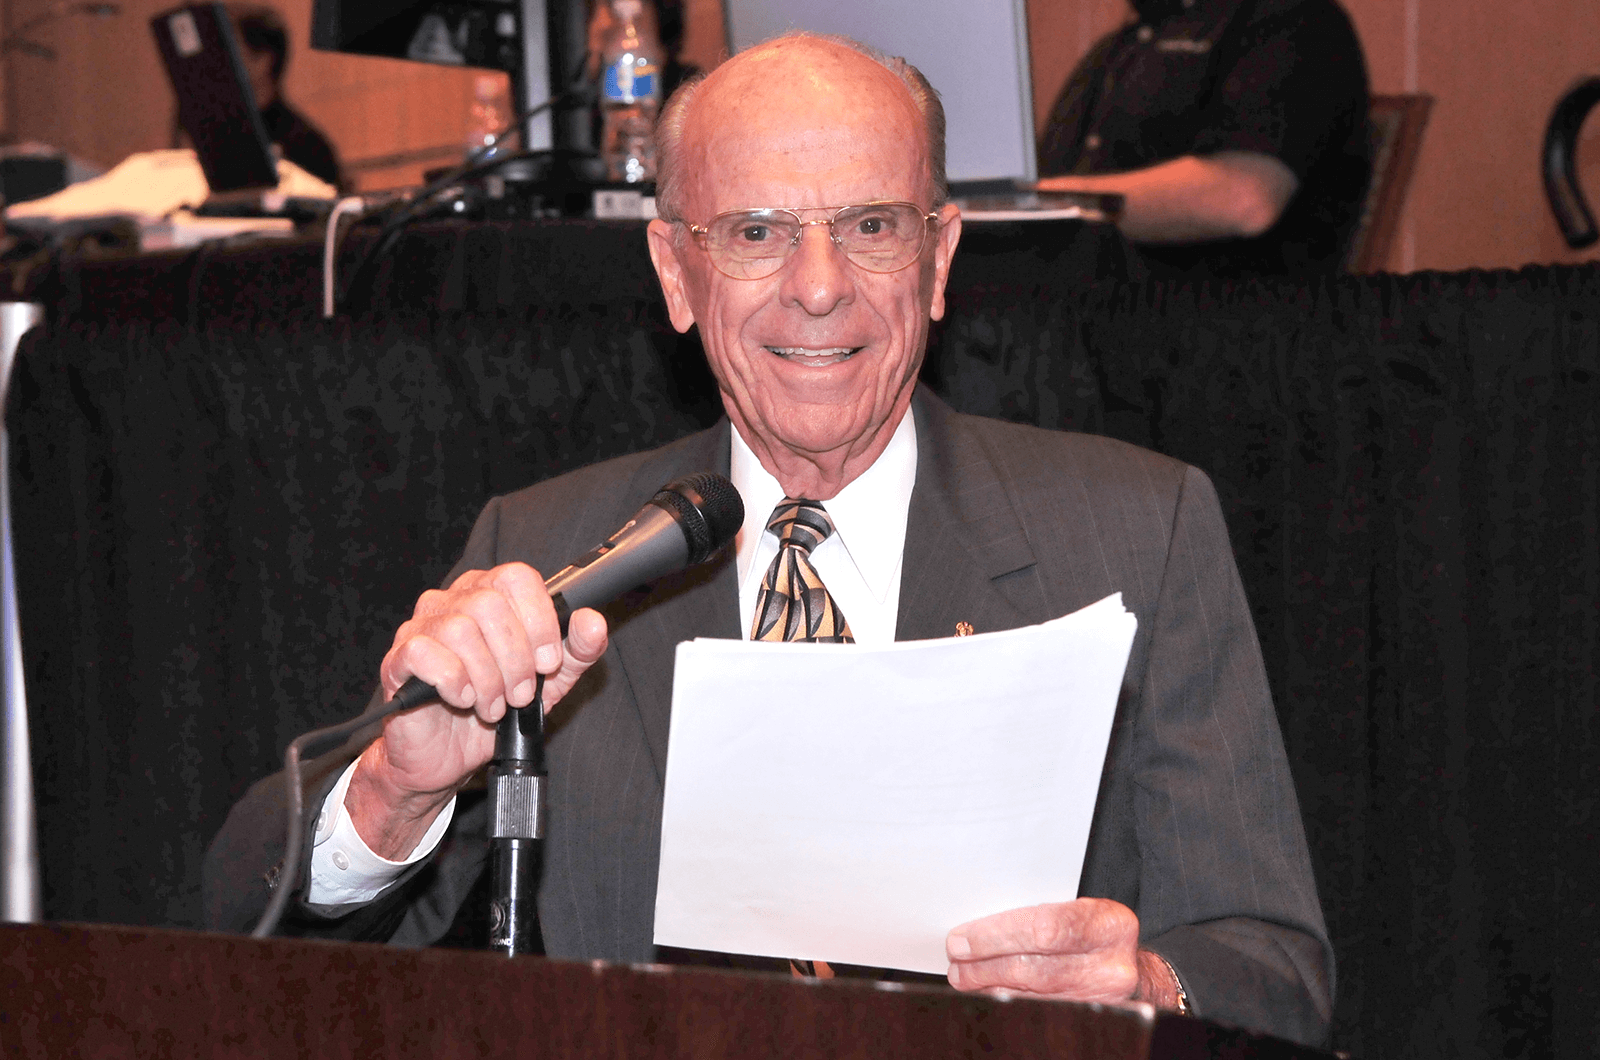 Don Ensch holding microphone and papers